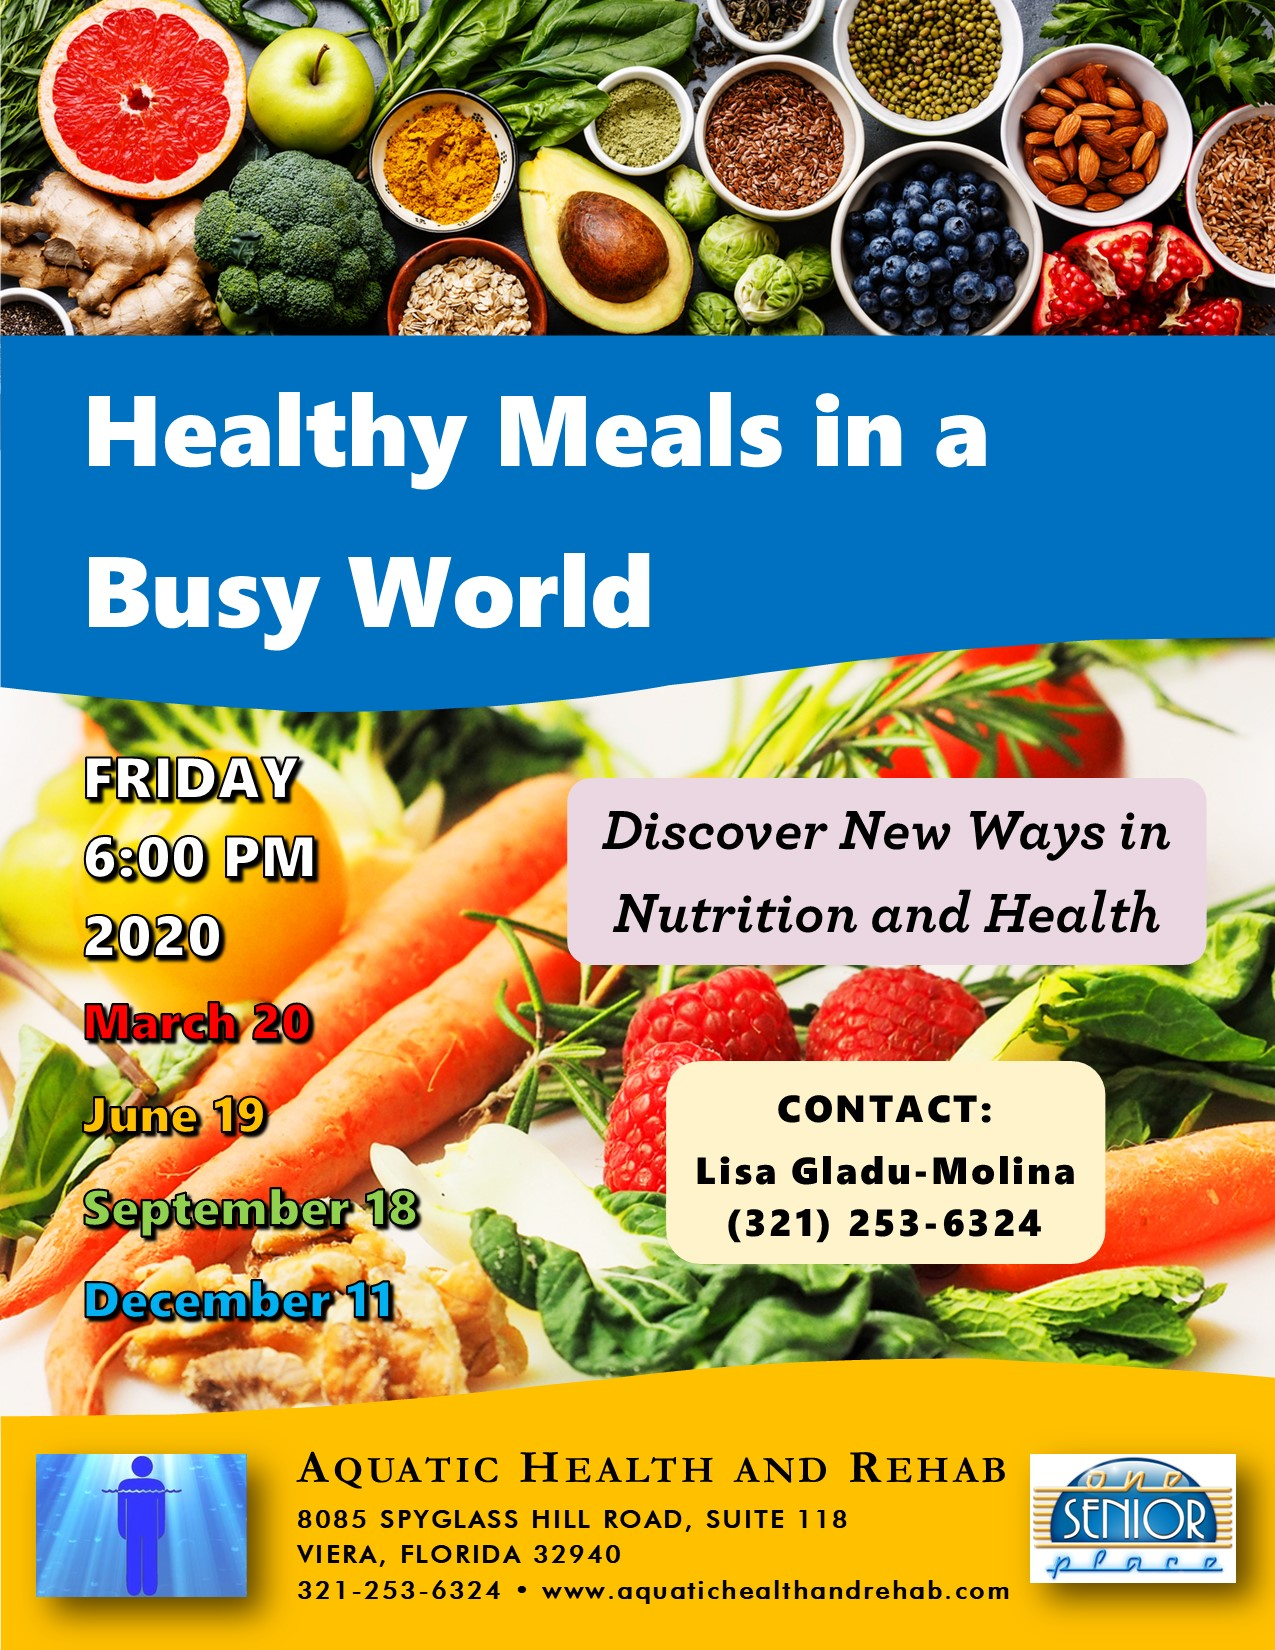 CANCELLED UNTIL FURTHER NOTICE - Healthy Meals in a Busy World presented by Aquatic Health and Rehab